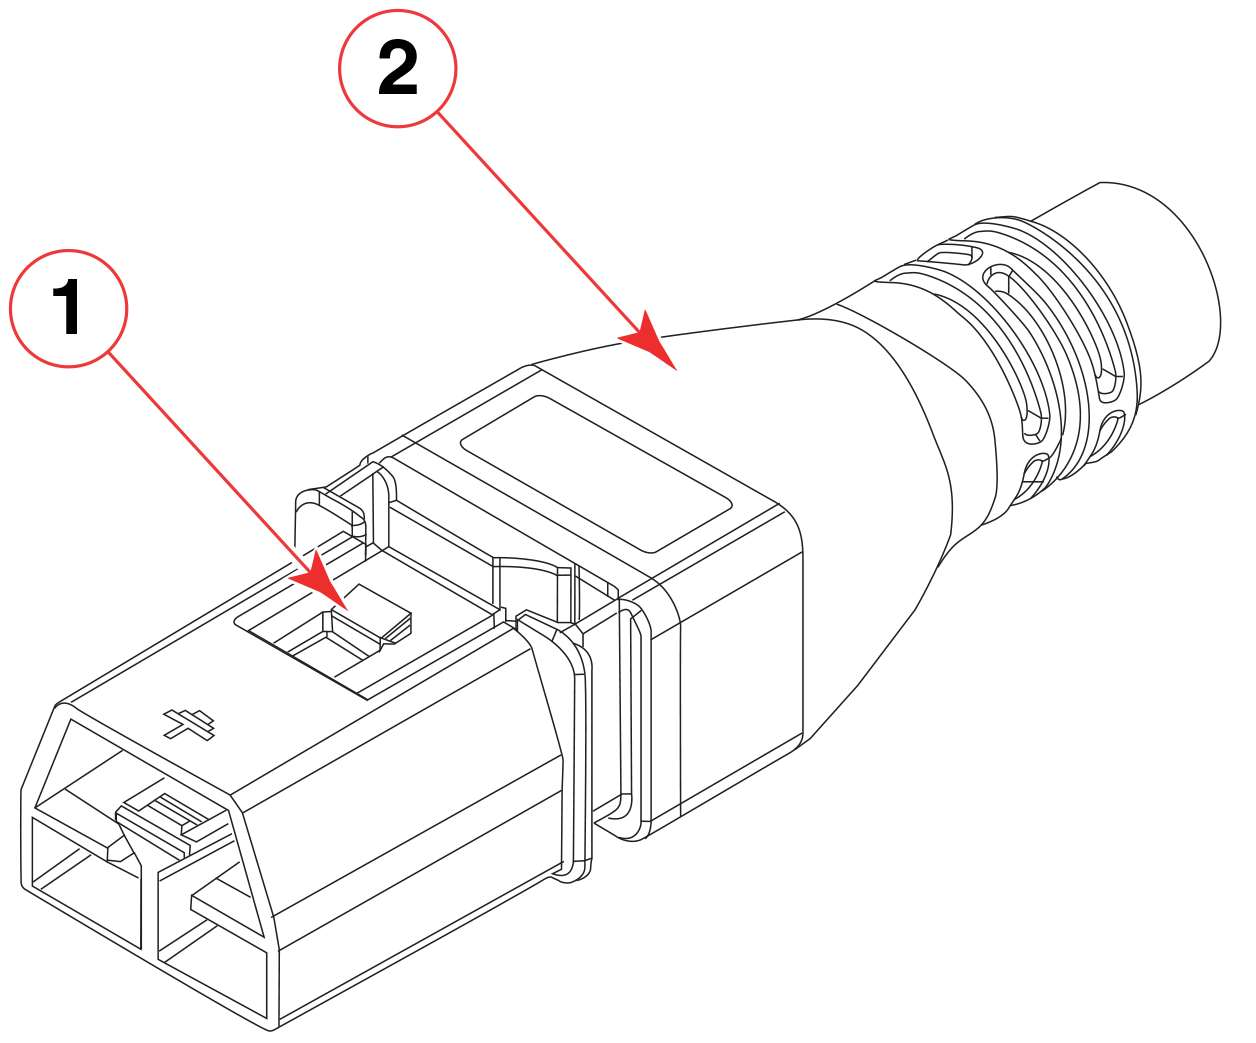 Connecting Power Cord To Hvac Hvdc Supplies Installation Drawing View Of Cable Connector Supply And Latch